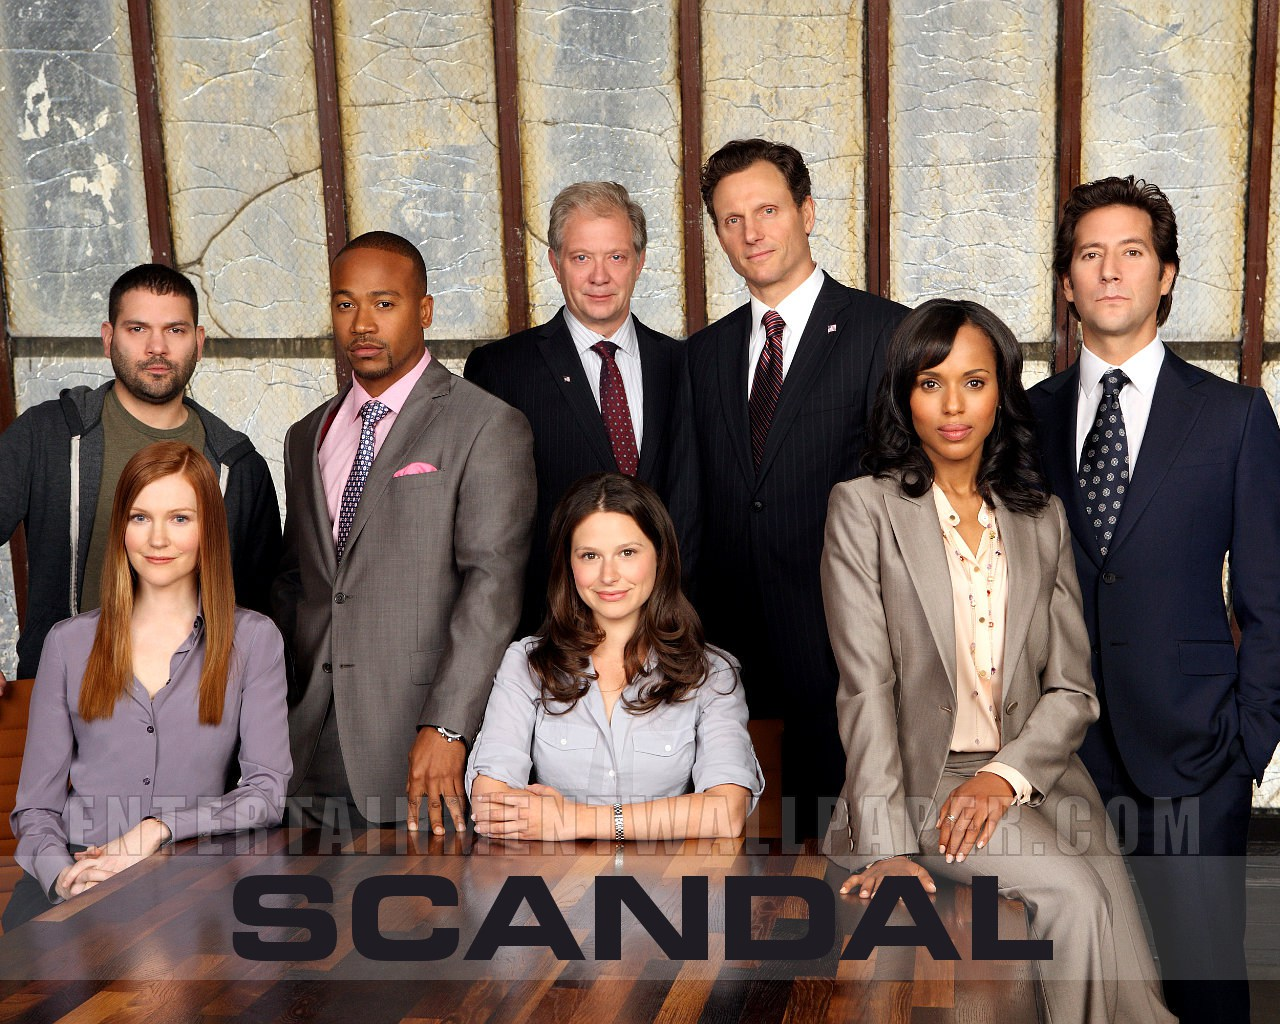 Scandal (almost 2 full seasons)